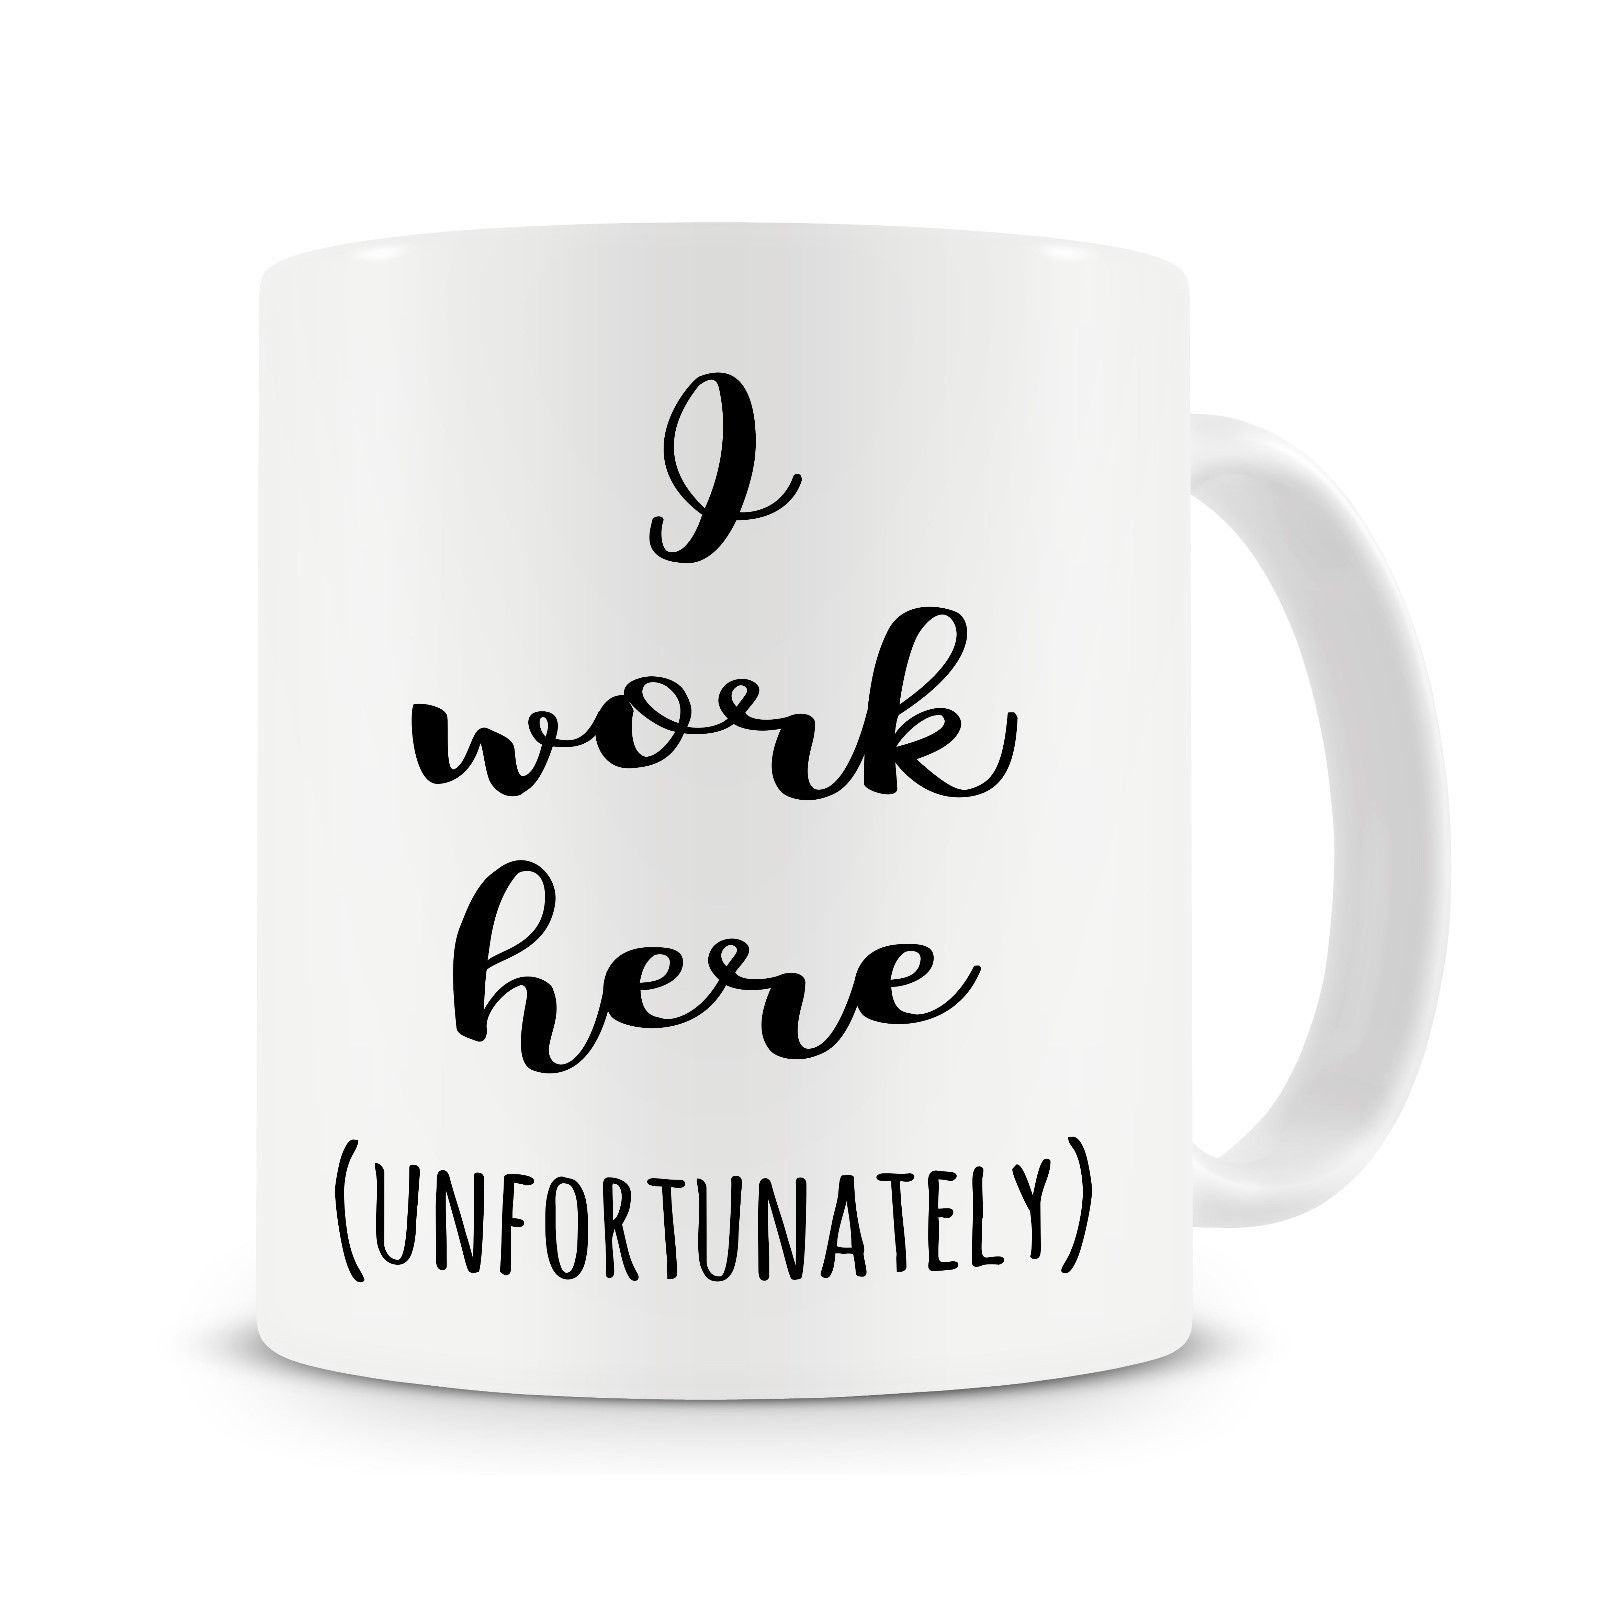 Funny Work Mugs Us 4 98 I Work Here Mug Funny Coffee Mugs Office Gifts Work Mugs Boss Mug Cup With Stirring Spoon Gift For Boss In Mugs From Home Garden On